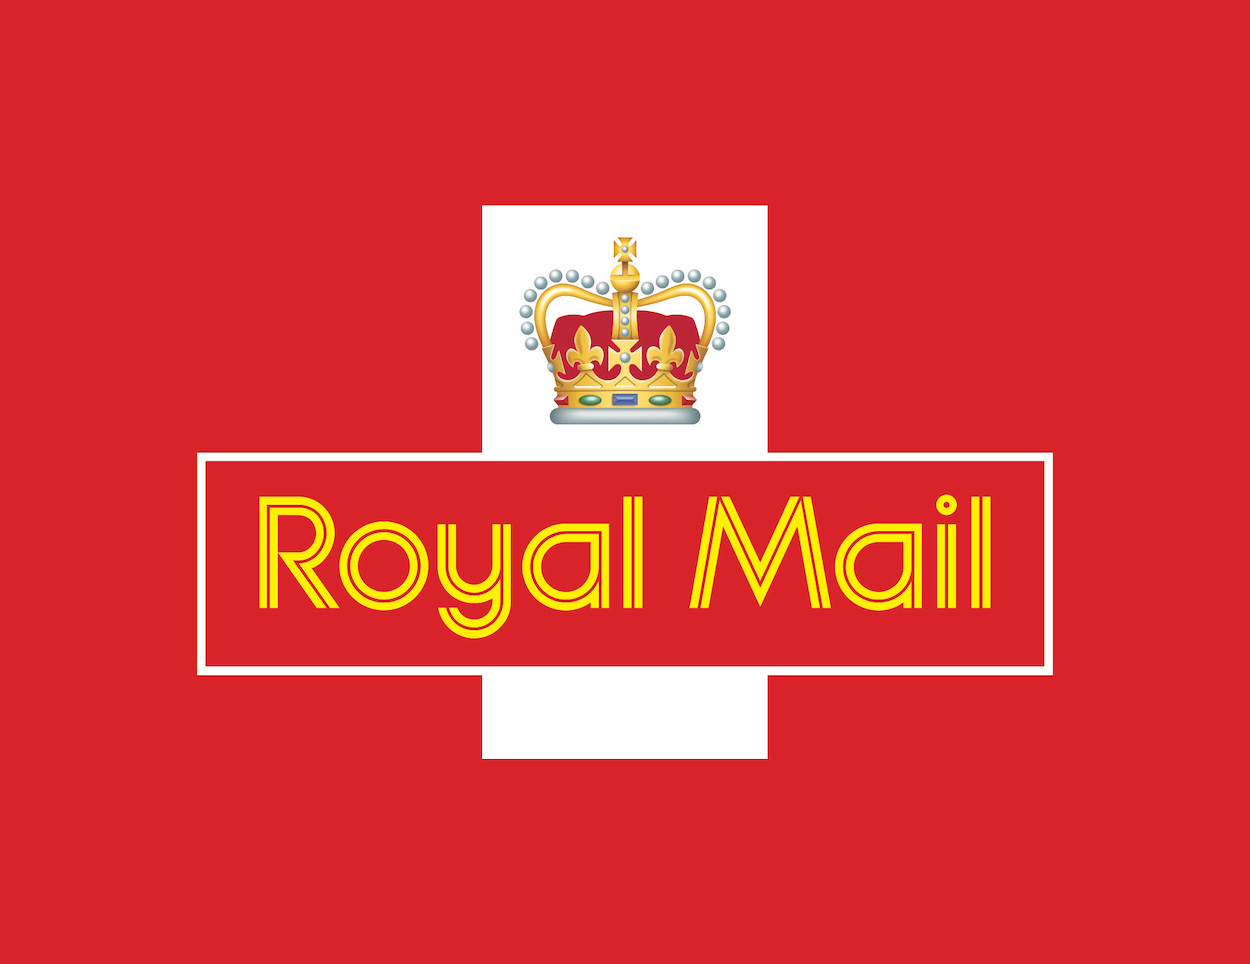 Royal Mail International Postage